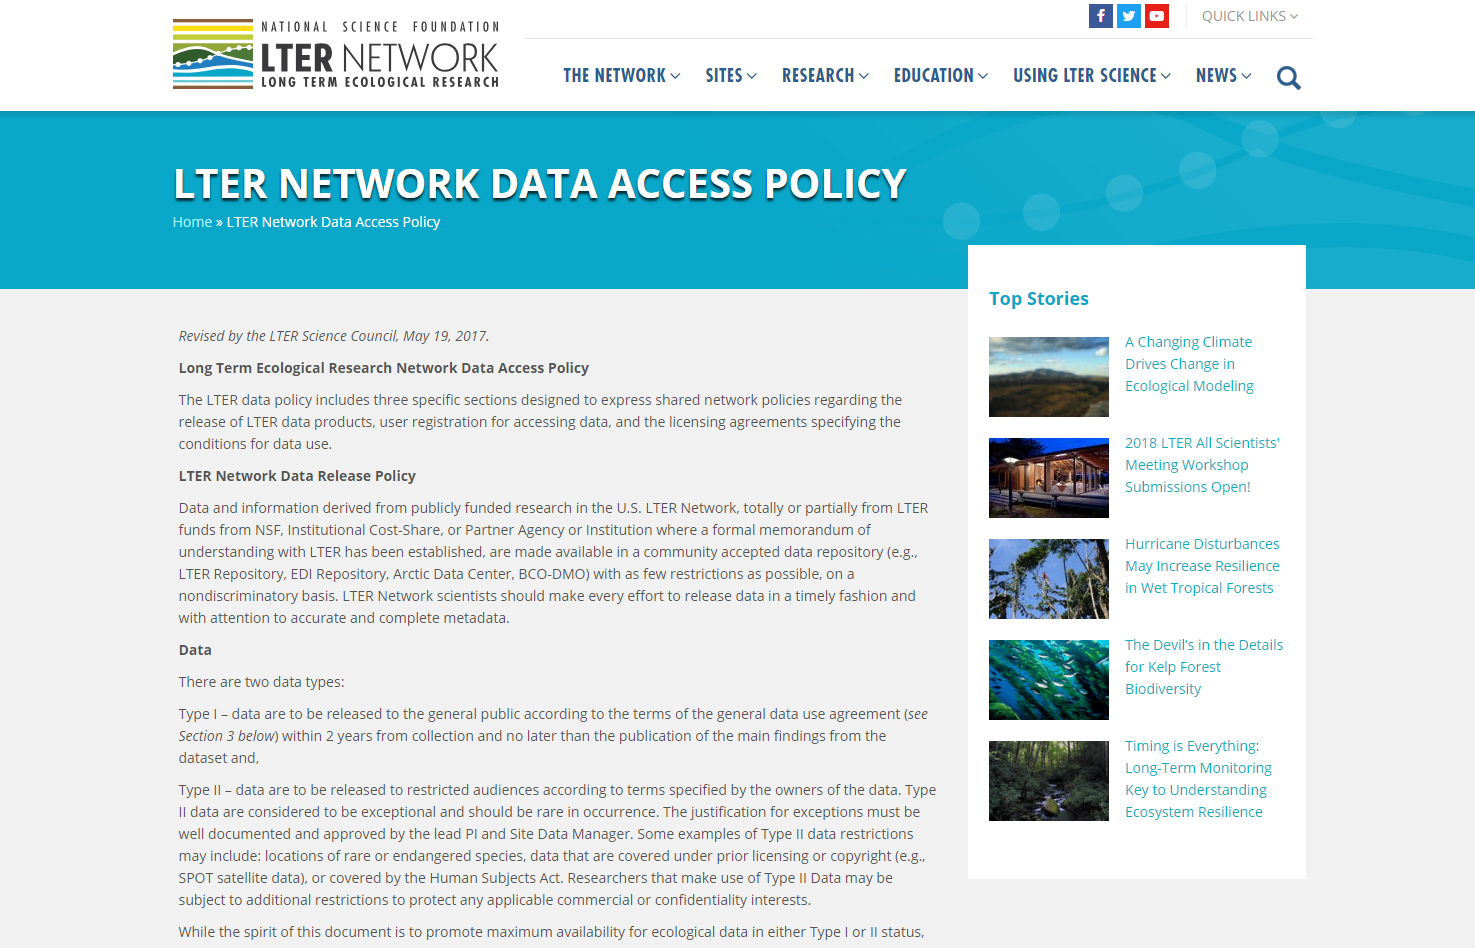 Data policy